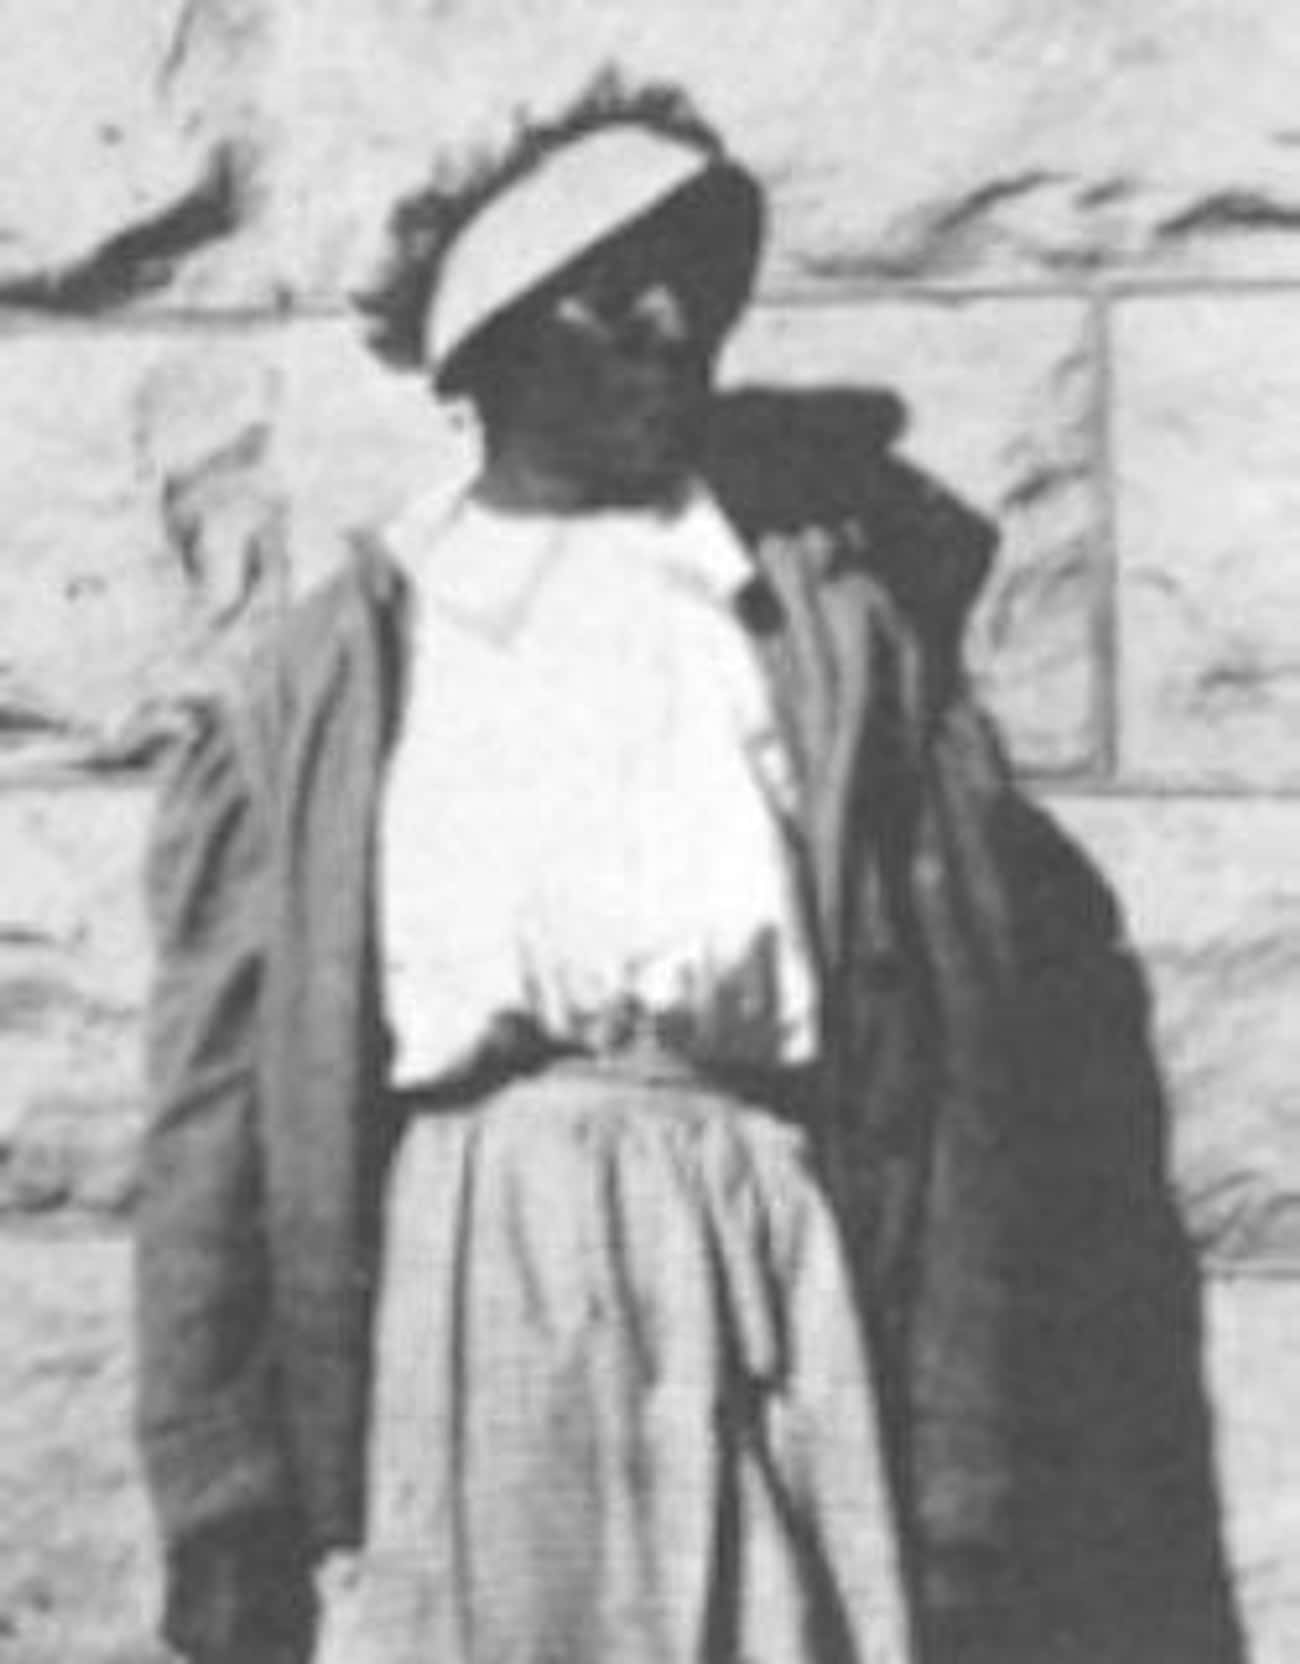 Cathay Williams Enlisted In The Civil War As A Man In Order To Fight